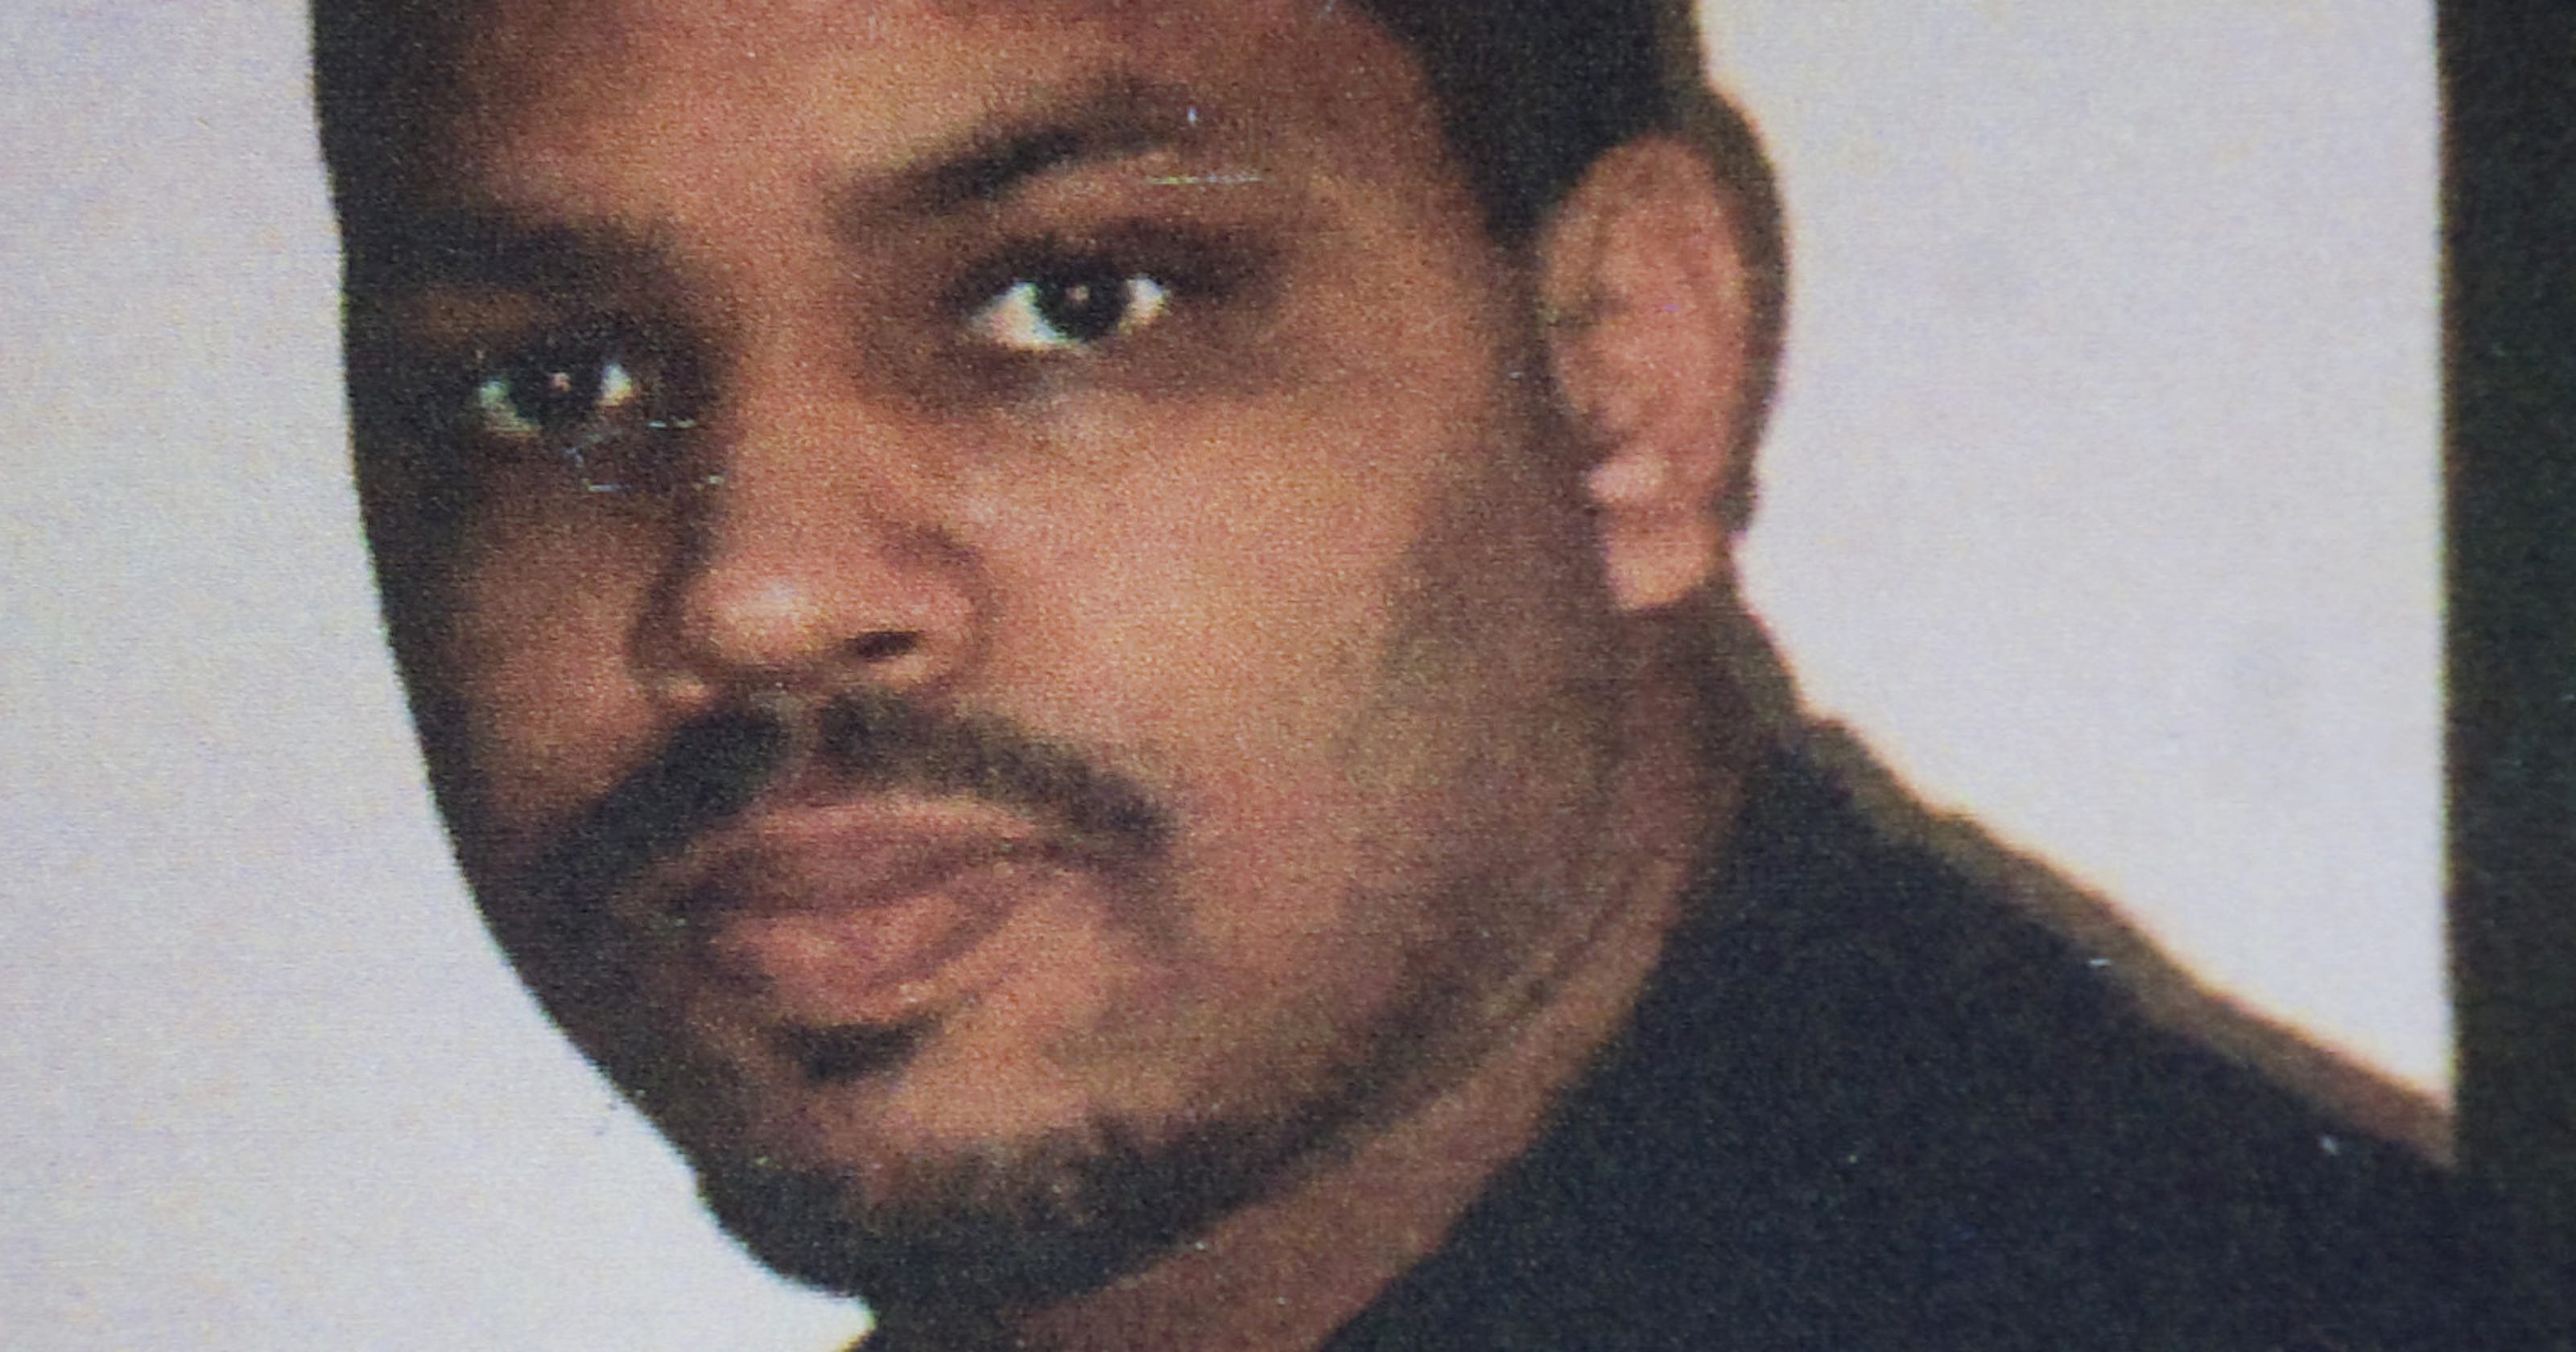 NJ Police Brutality: 'Pile on the rabbit ' Inside death by cop